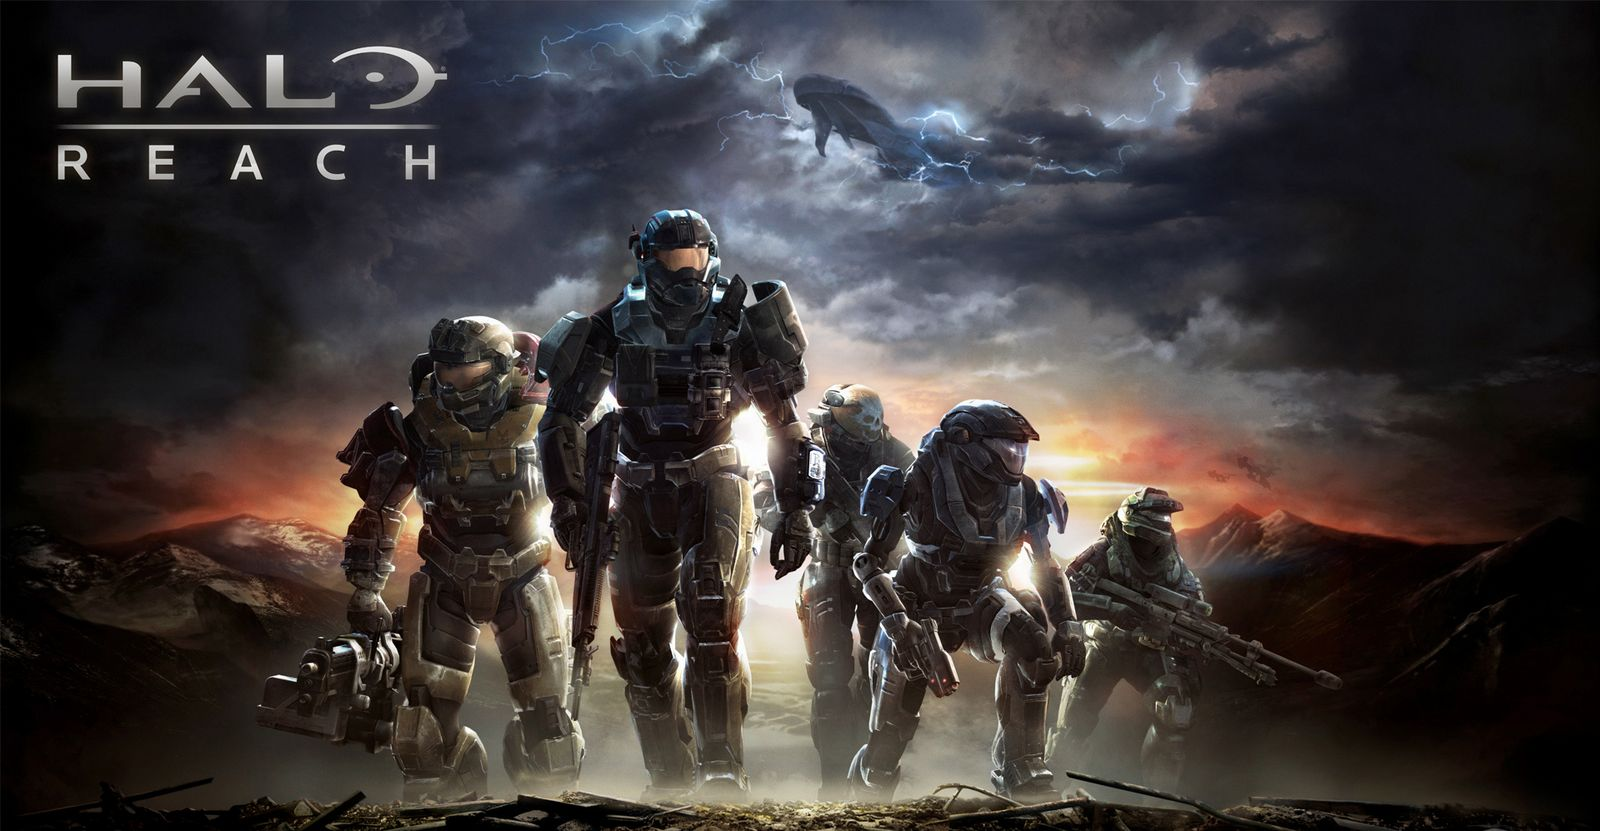 halo team hd wallpapers